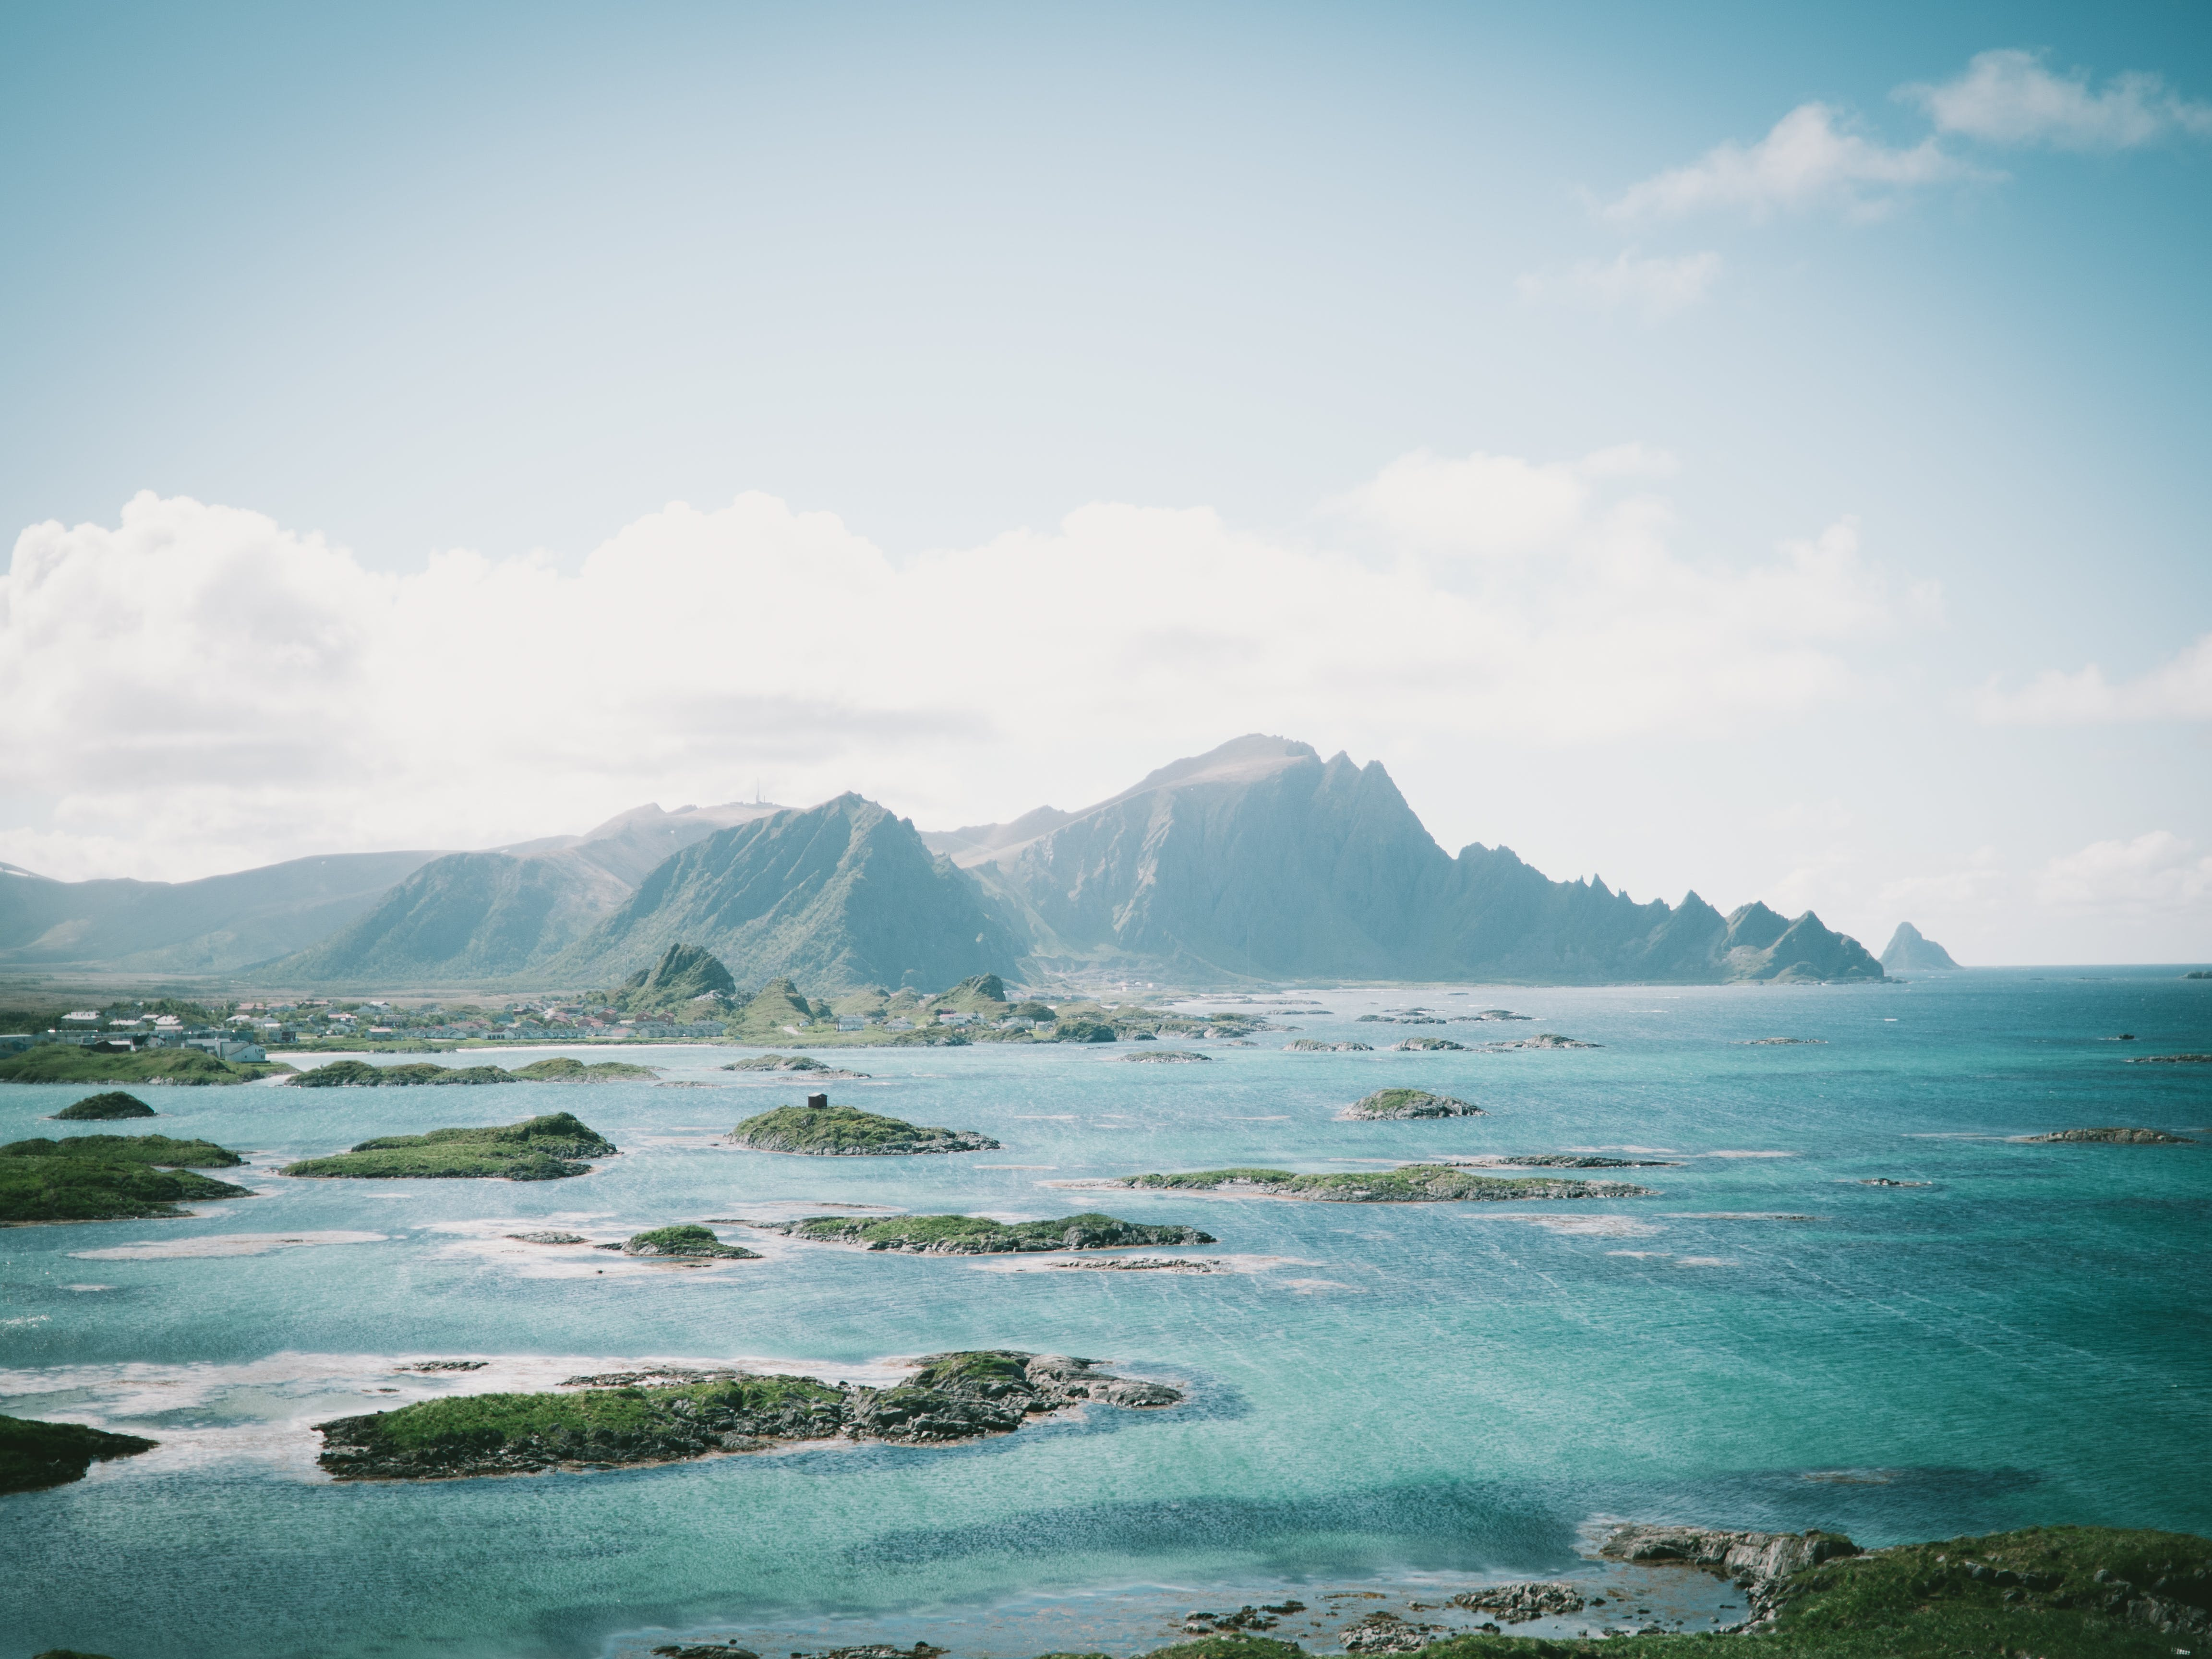 Green Grass-covered Islands during Day